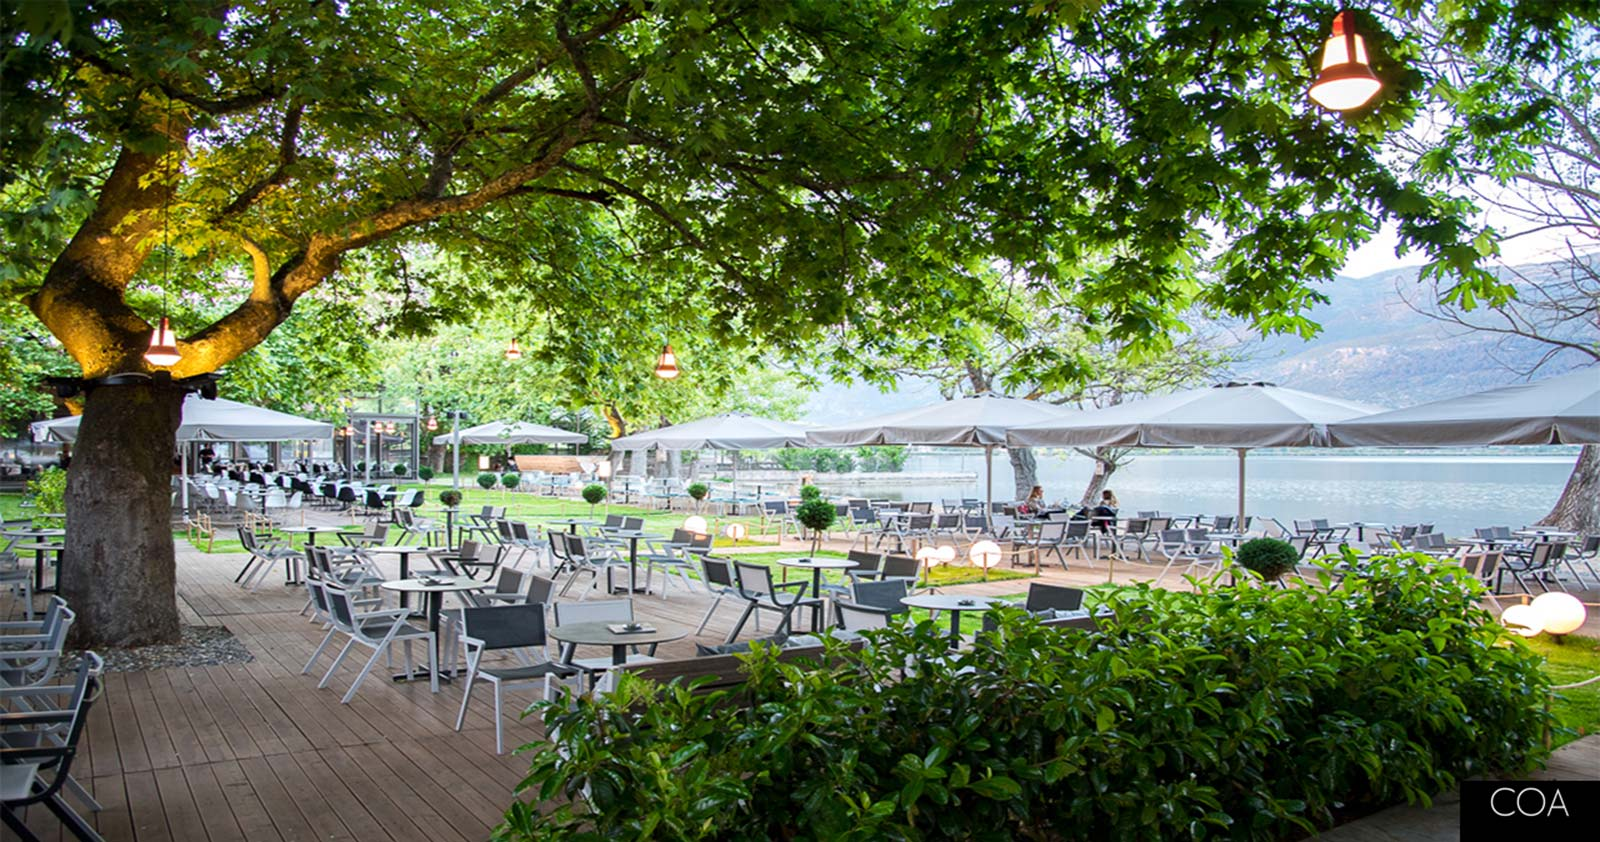 """NAUTICAL CLUB OF IOANNINA PARK"" RESTAURANT – CAFE, IOANNINA"